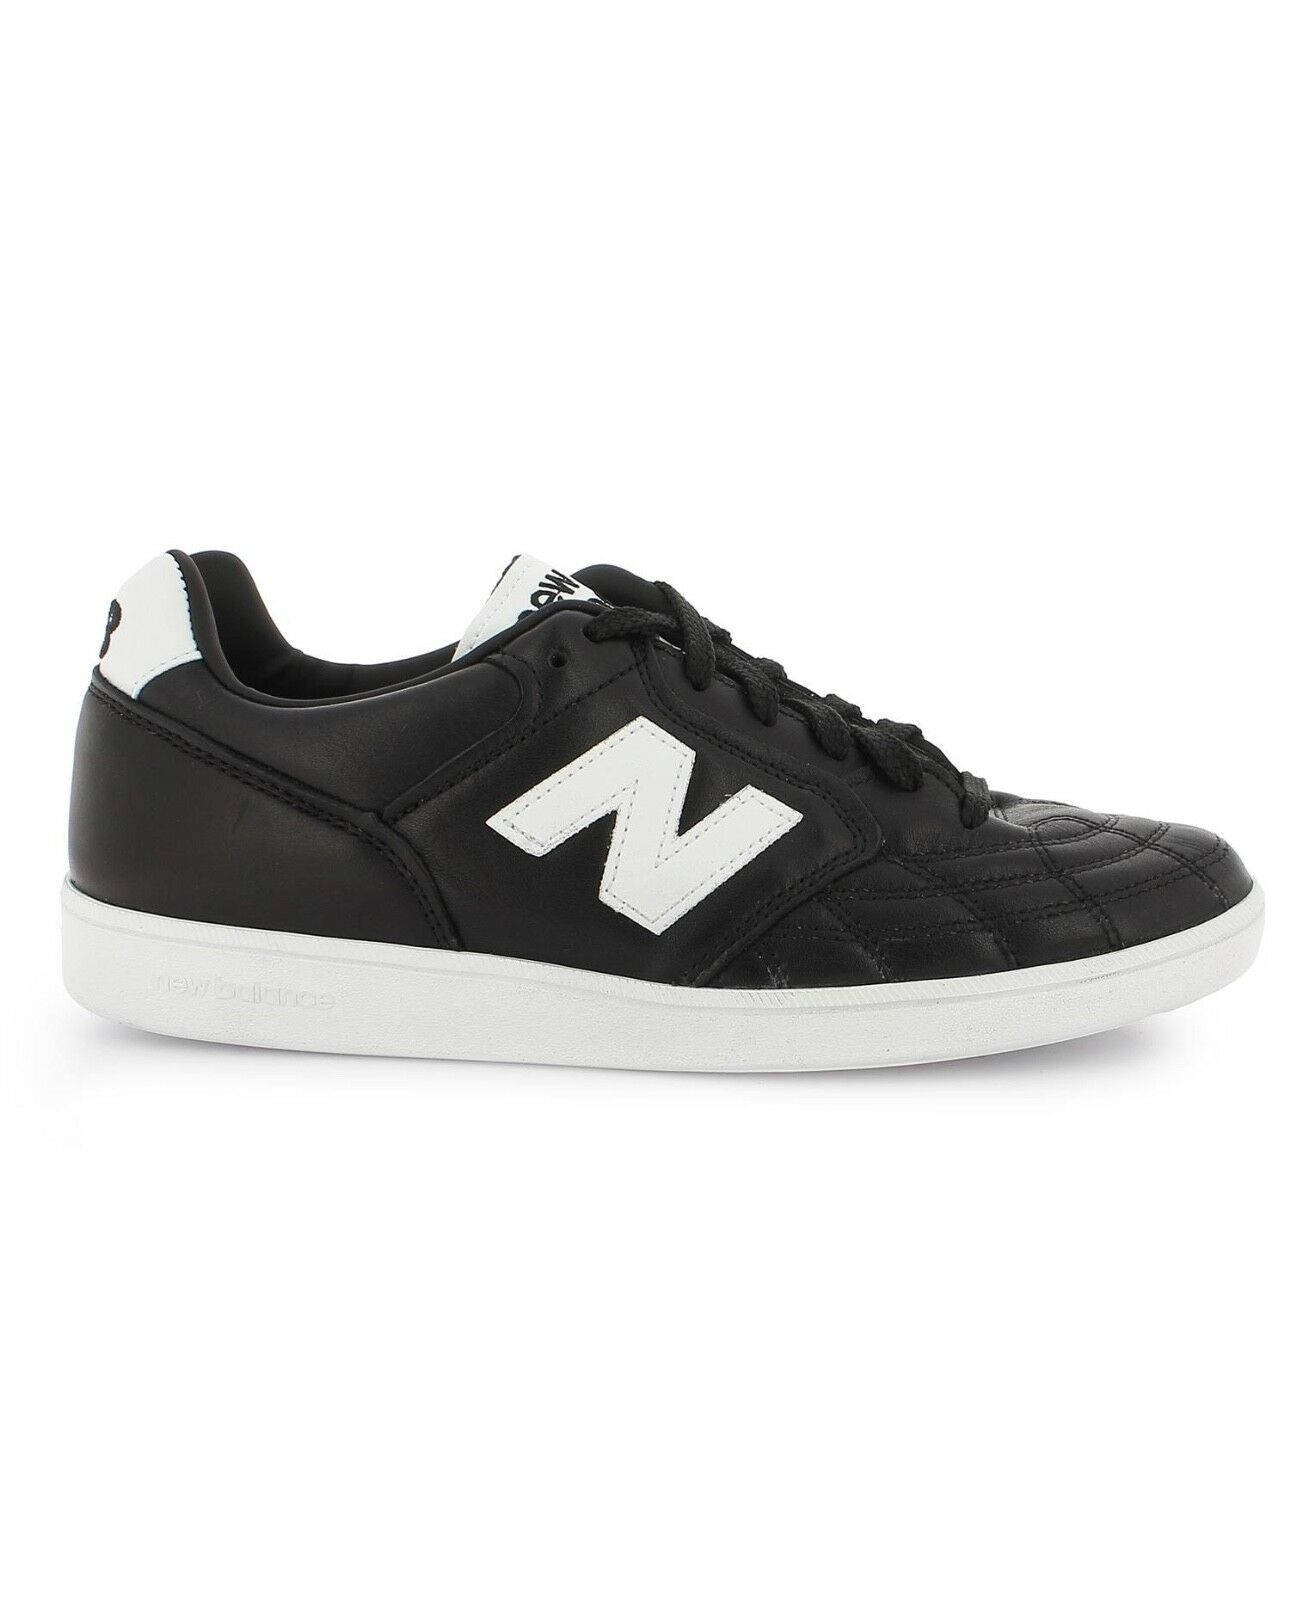 Men's New Balance Made in Athletic England EPICTRFB